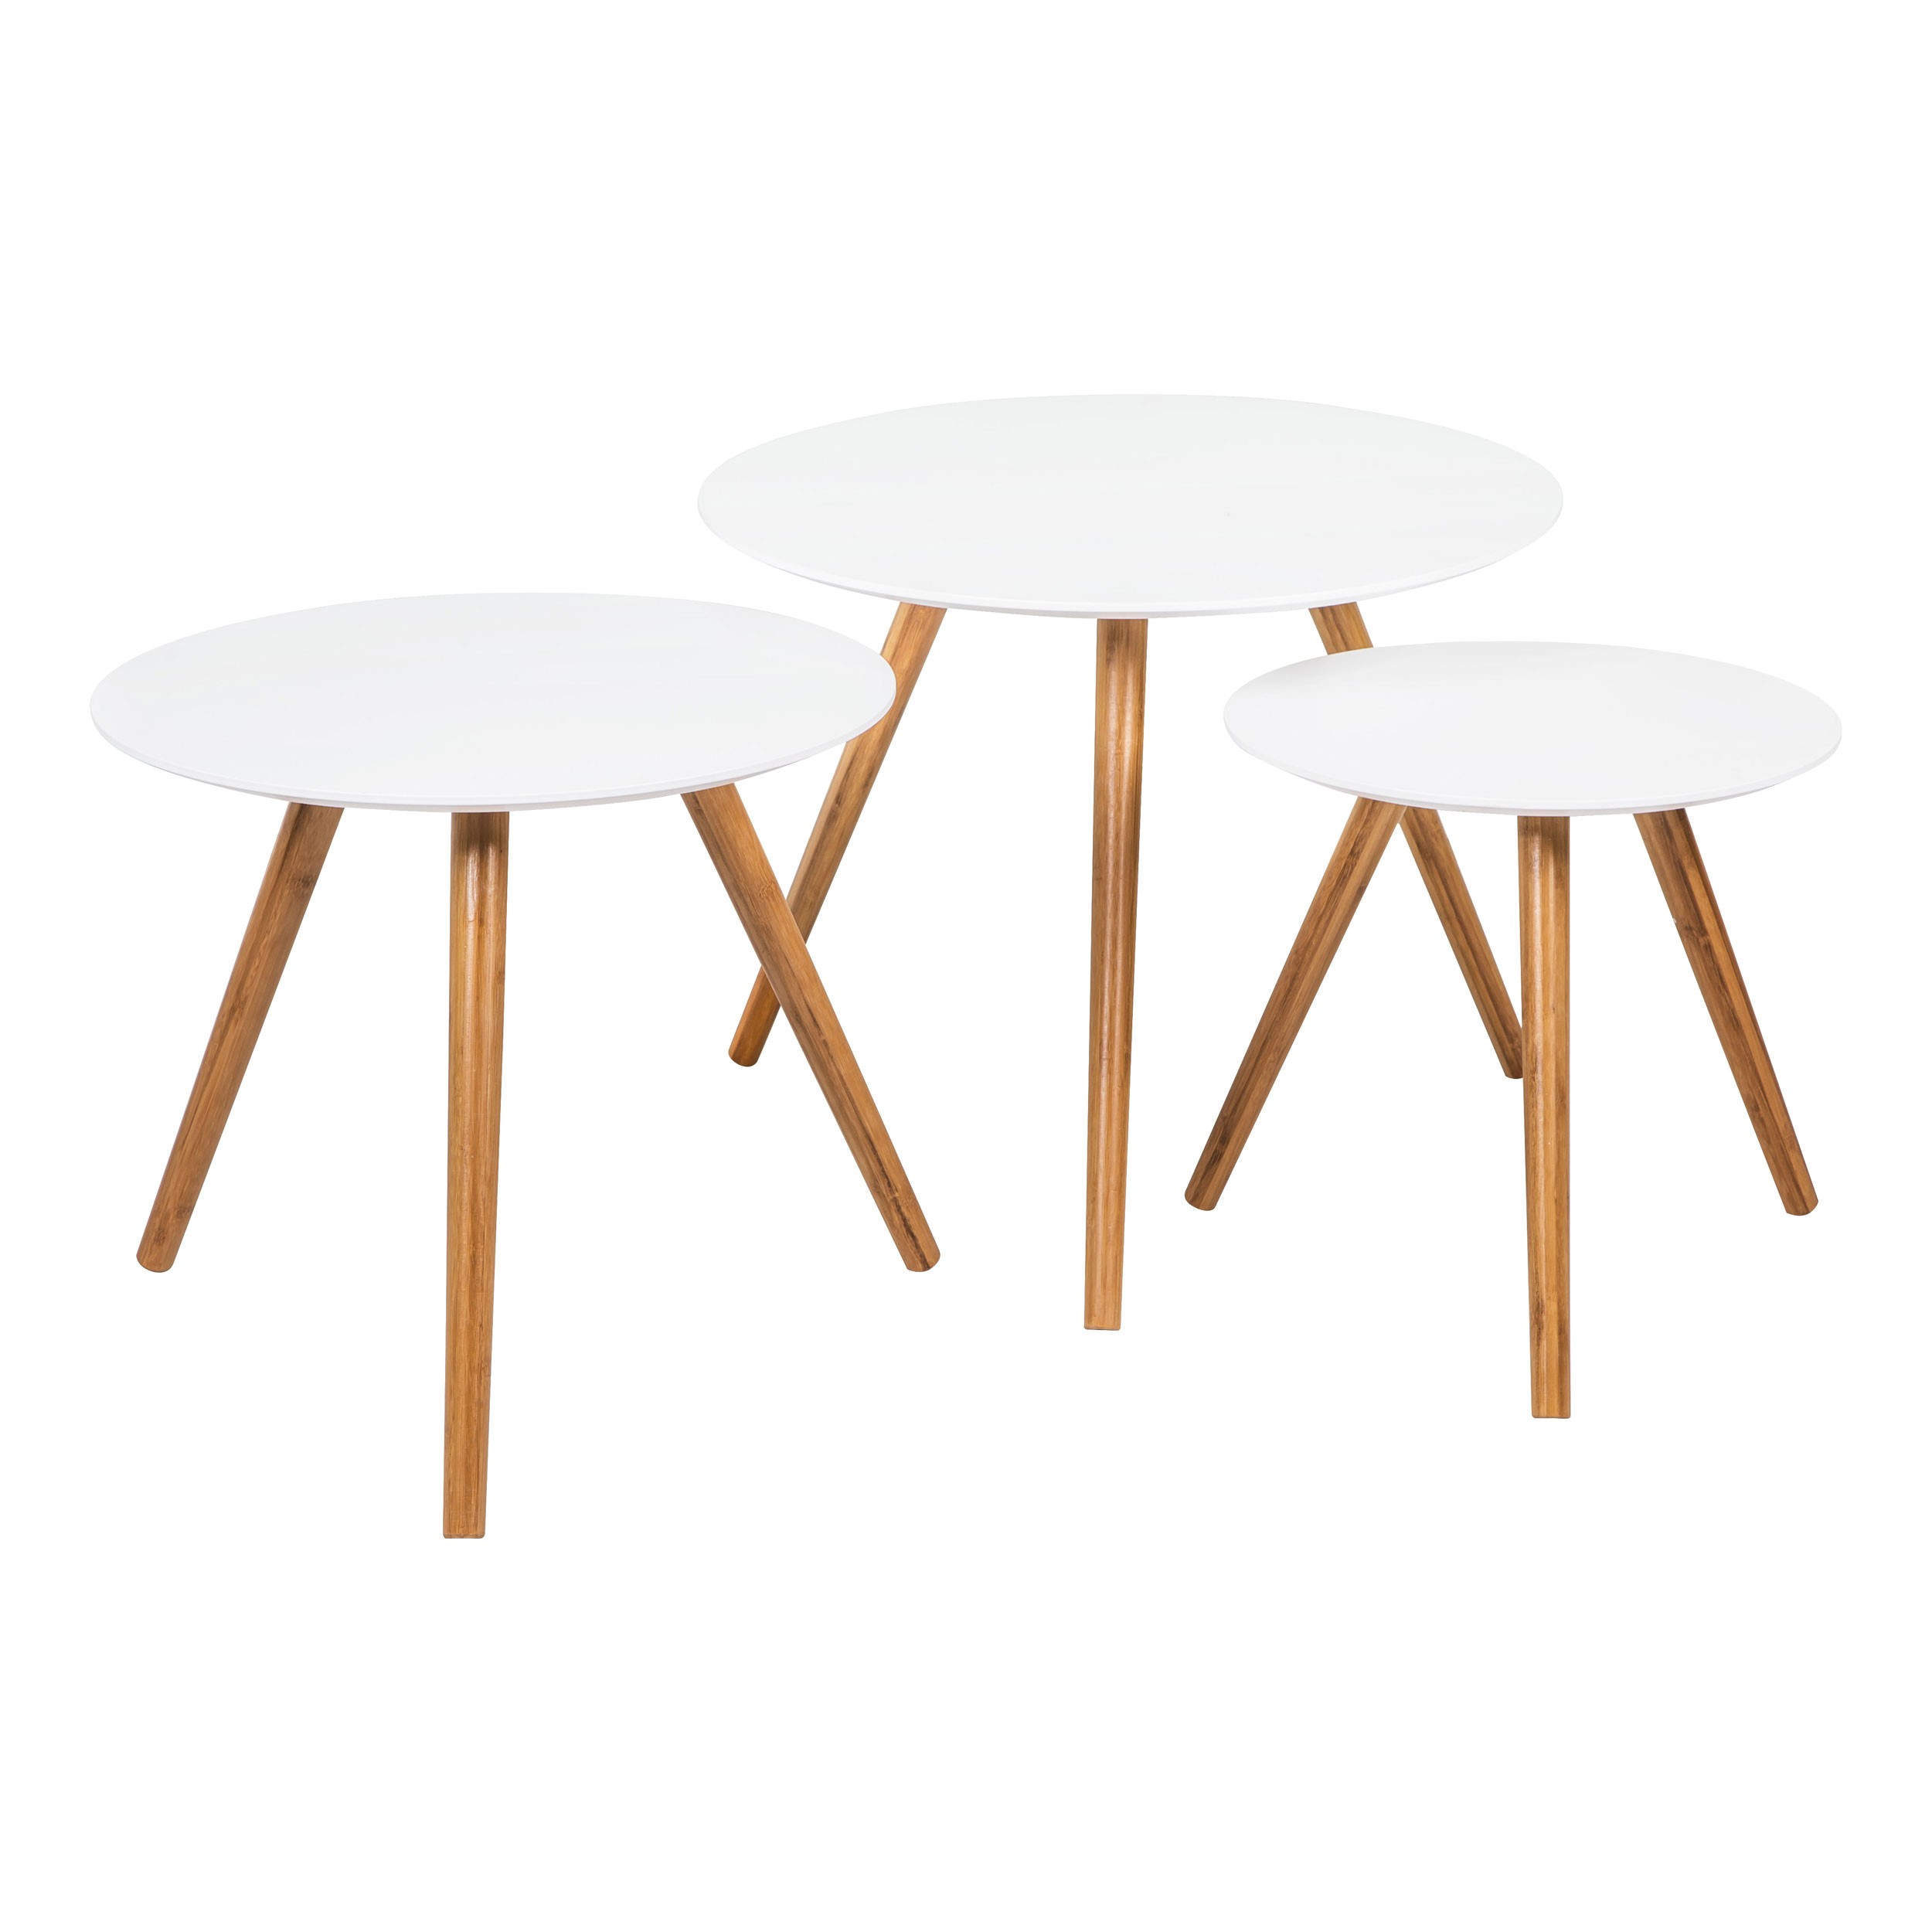 Table Basse Scandinave Blanche Table Basse Ronde Liv Blanche Lot De 3